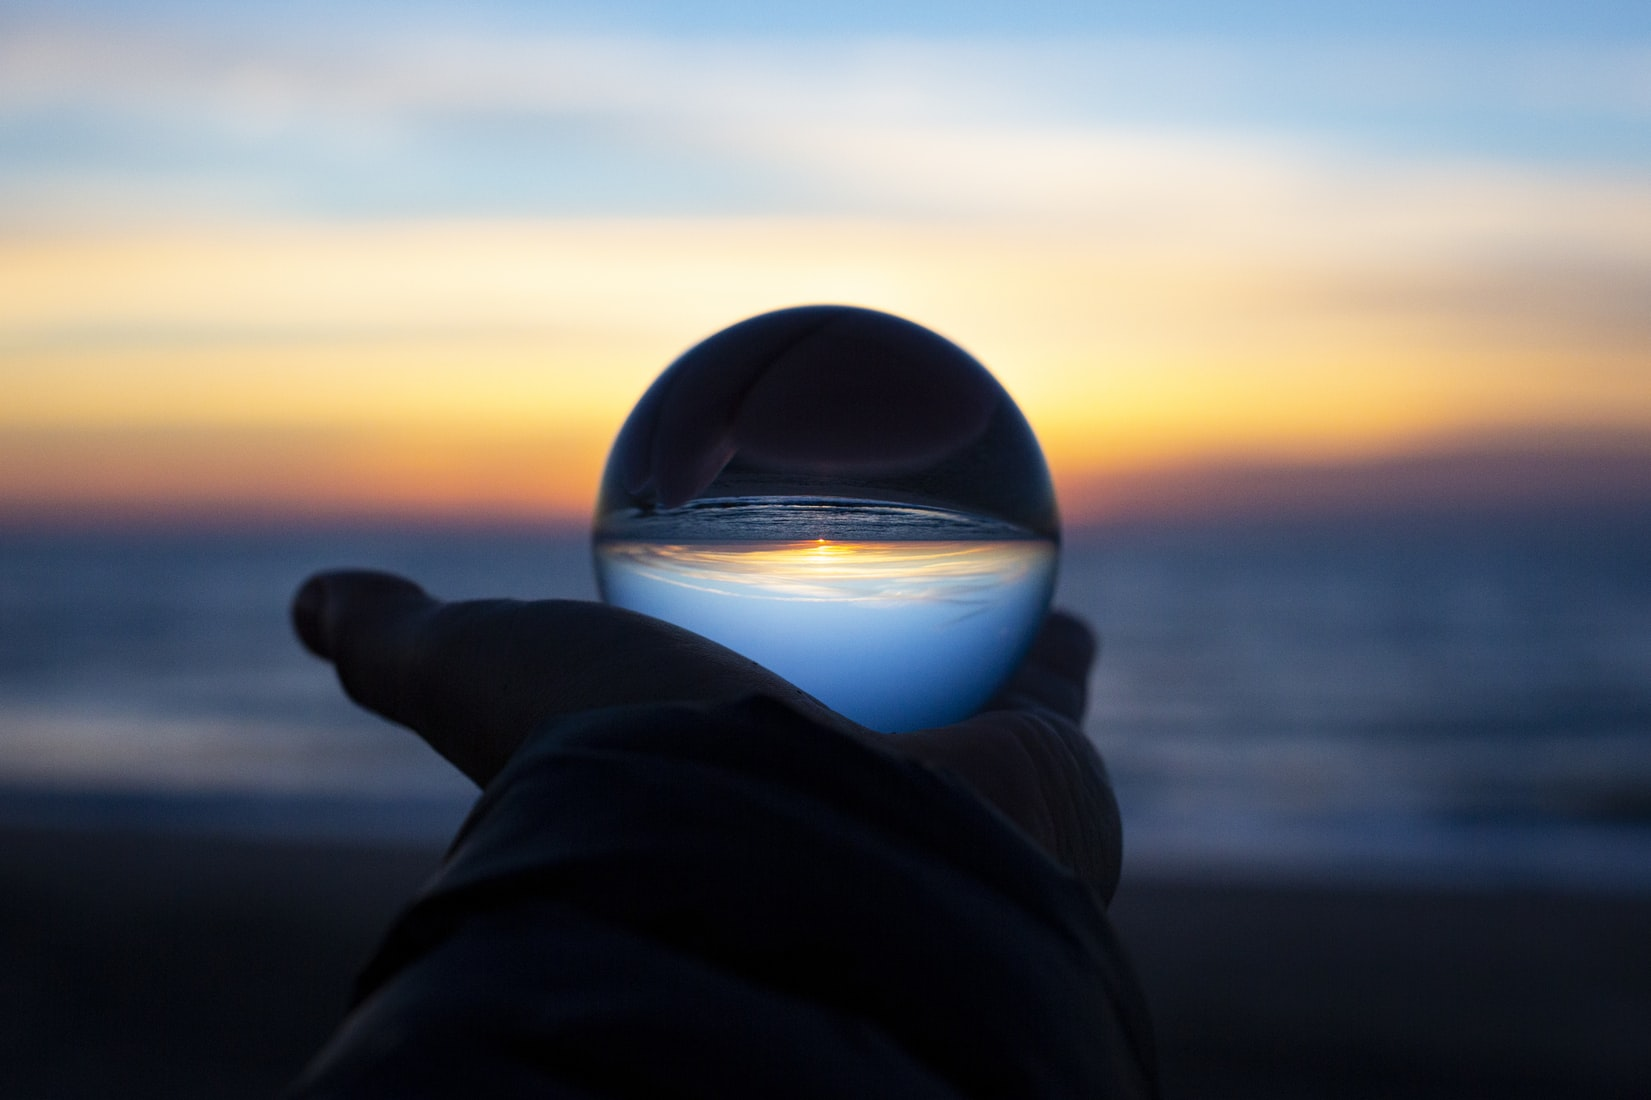 Person holding clear round glass in front of body of water